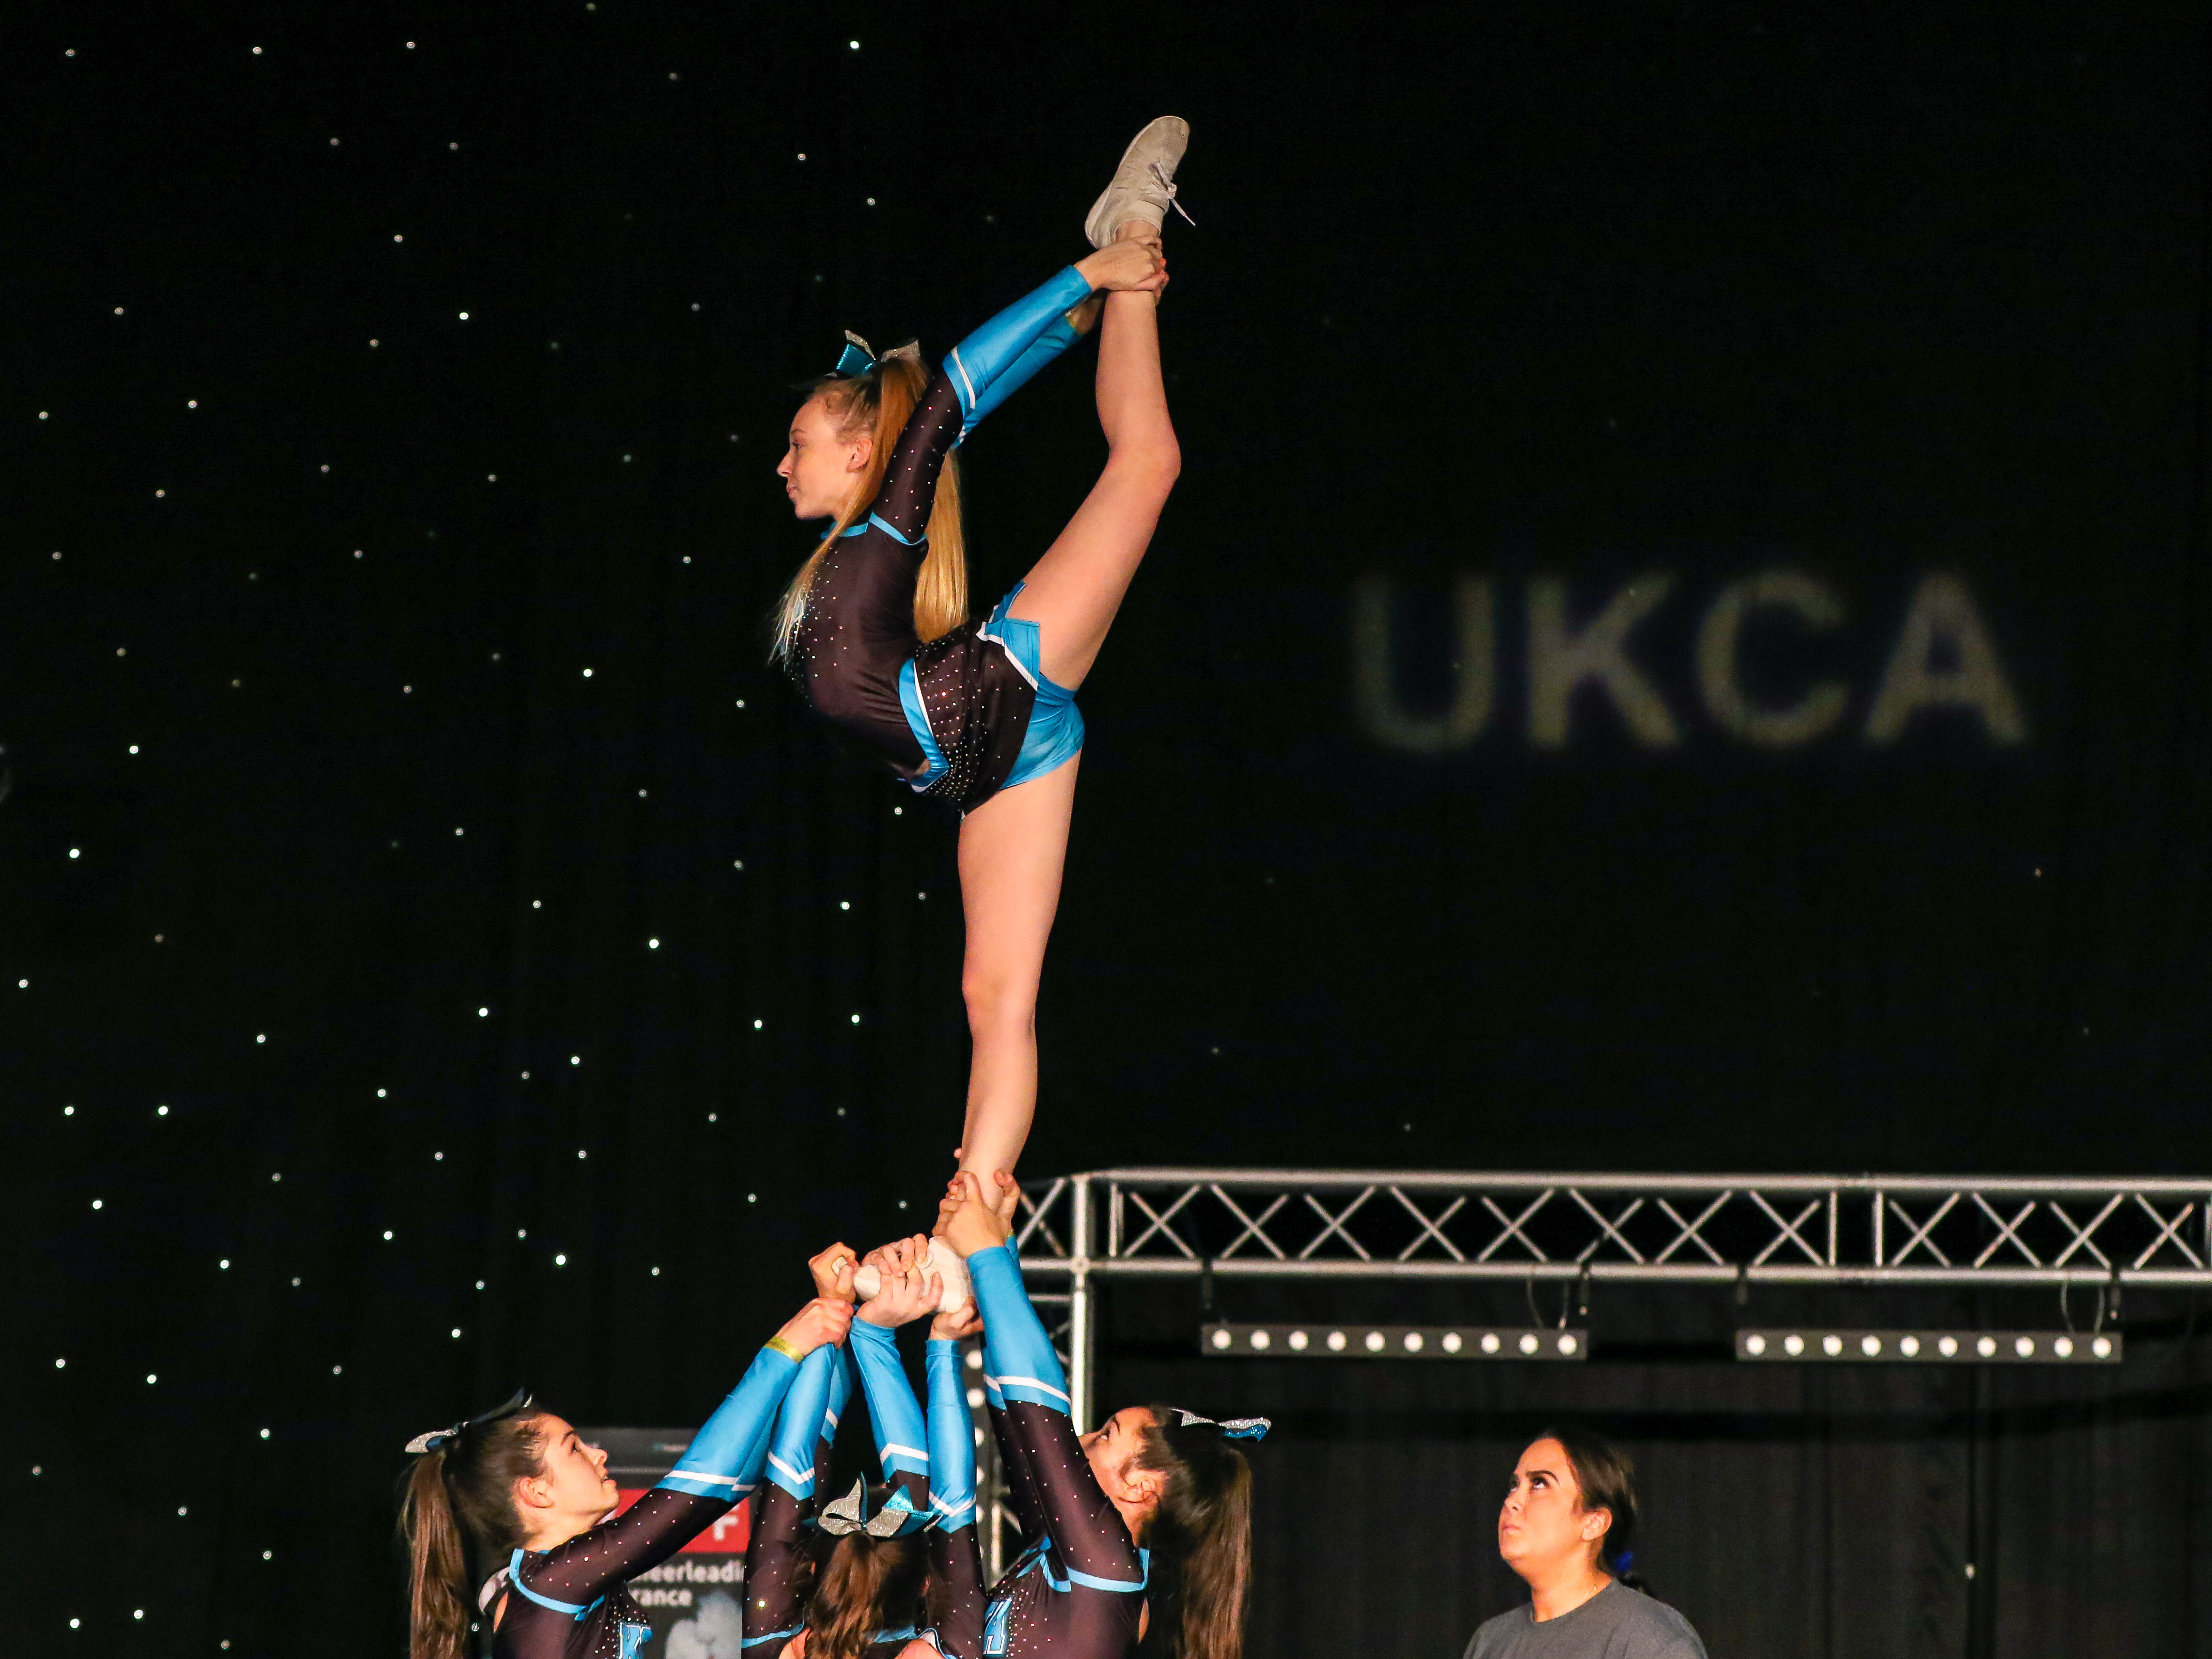 UKCA Winter Champs 2019